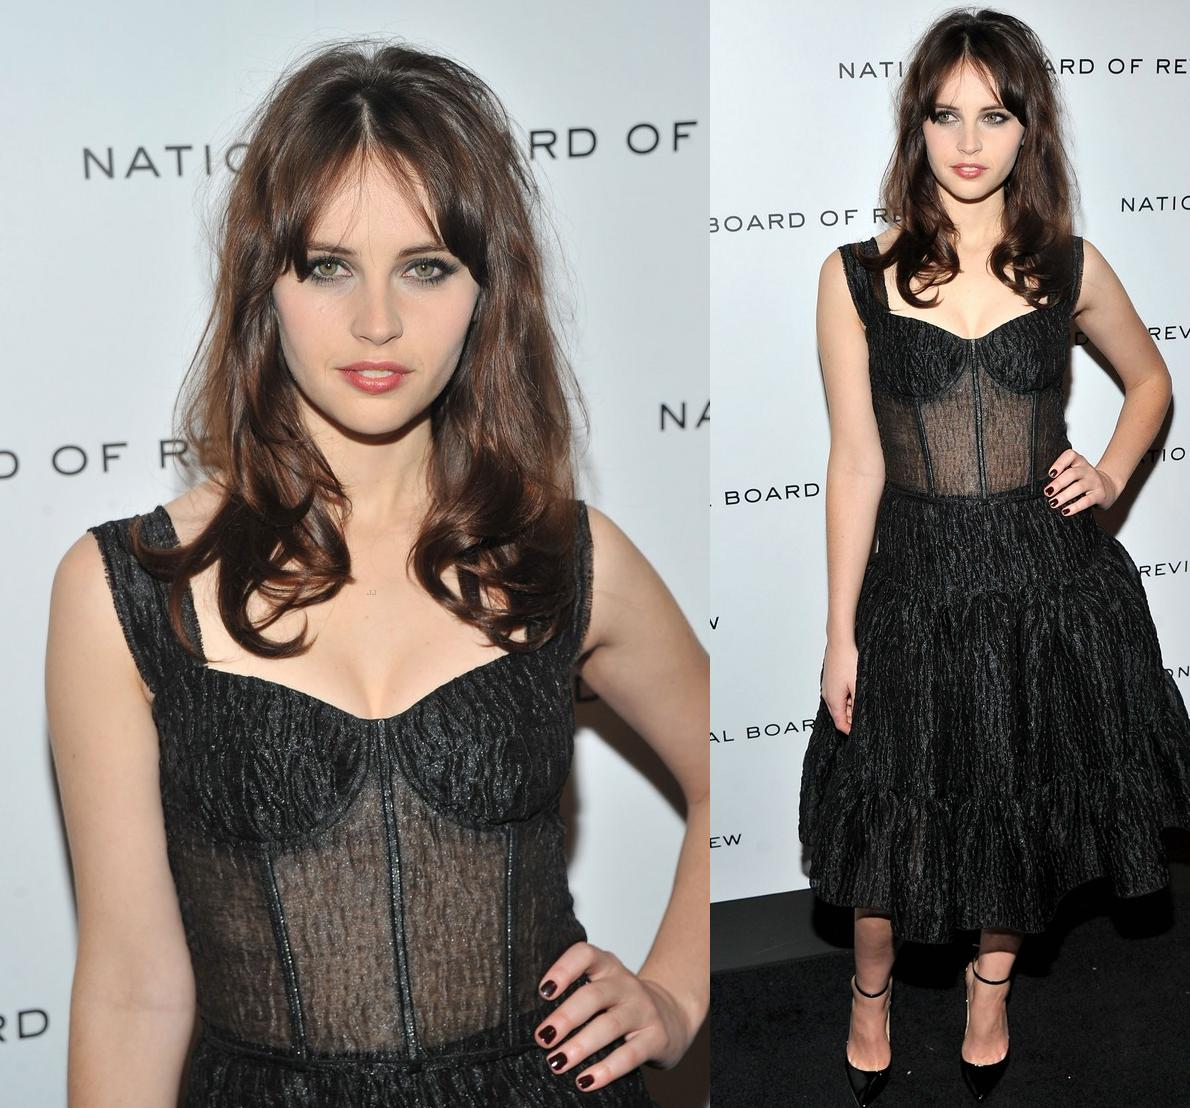 http://2.bp.blogspot.com/-kjChXxt5F9A/Tw39bLIKDxI/AAAAAAAAEAo/_nCywZbrAEQ/s1600/Felicity+Jones+In+Dolce+%2526+Gabbana+Spring+2012+-+2012+National+Board+of+Review+Awards+Gala.jpg